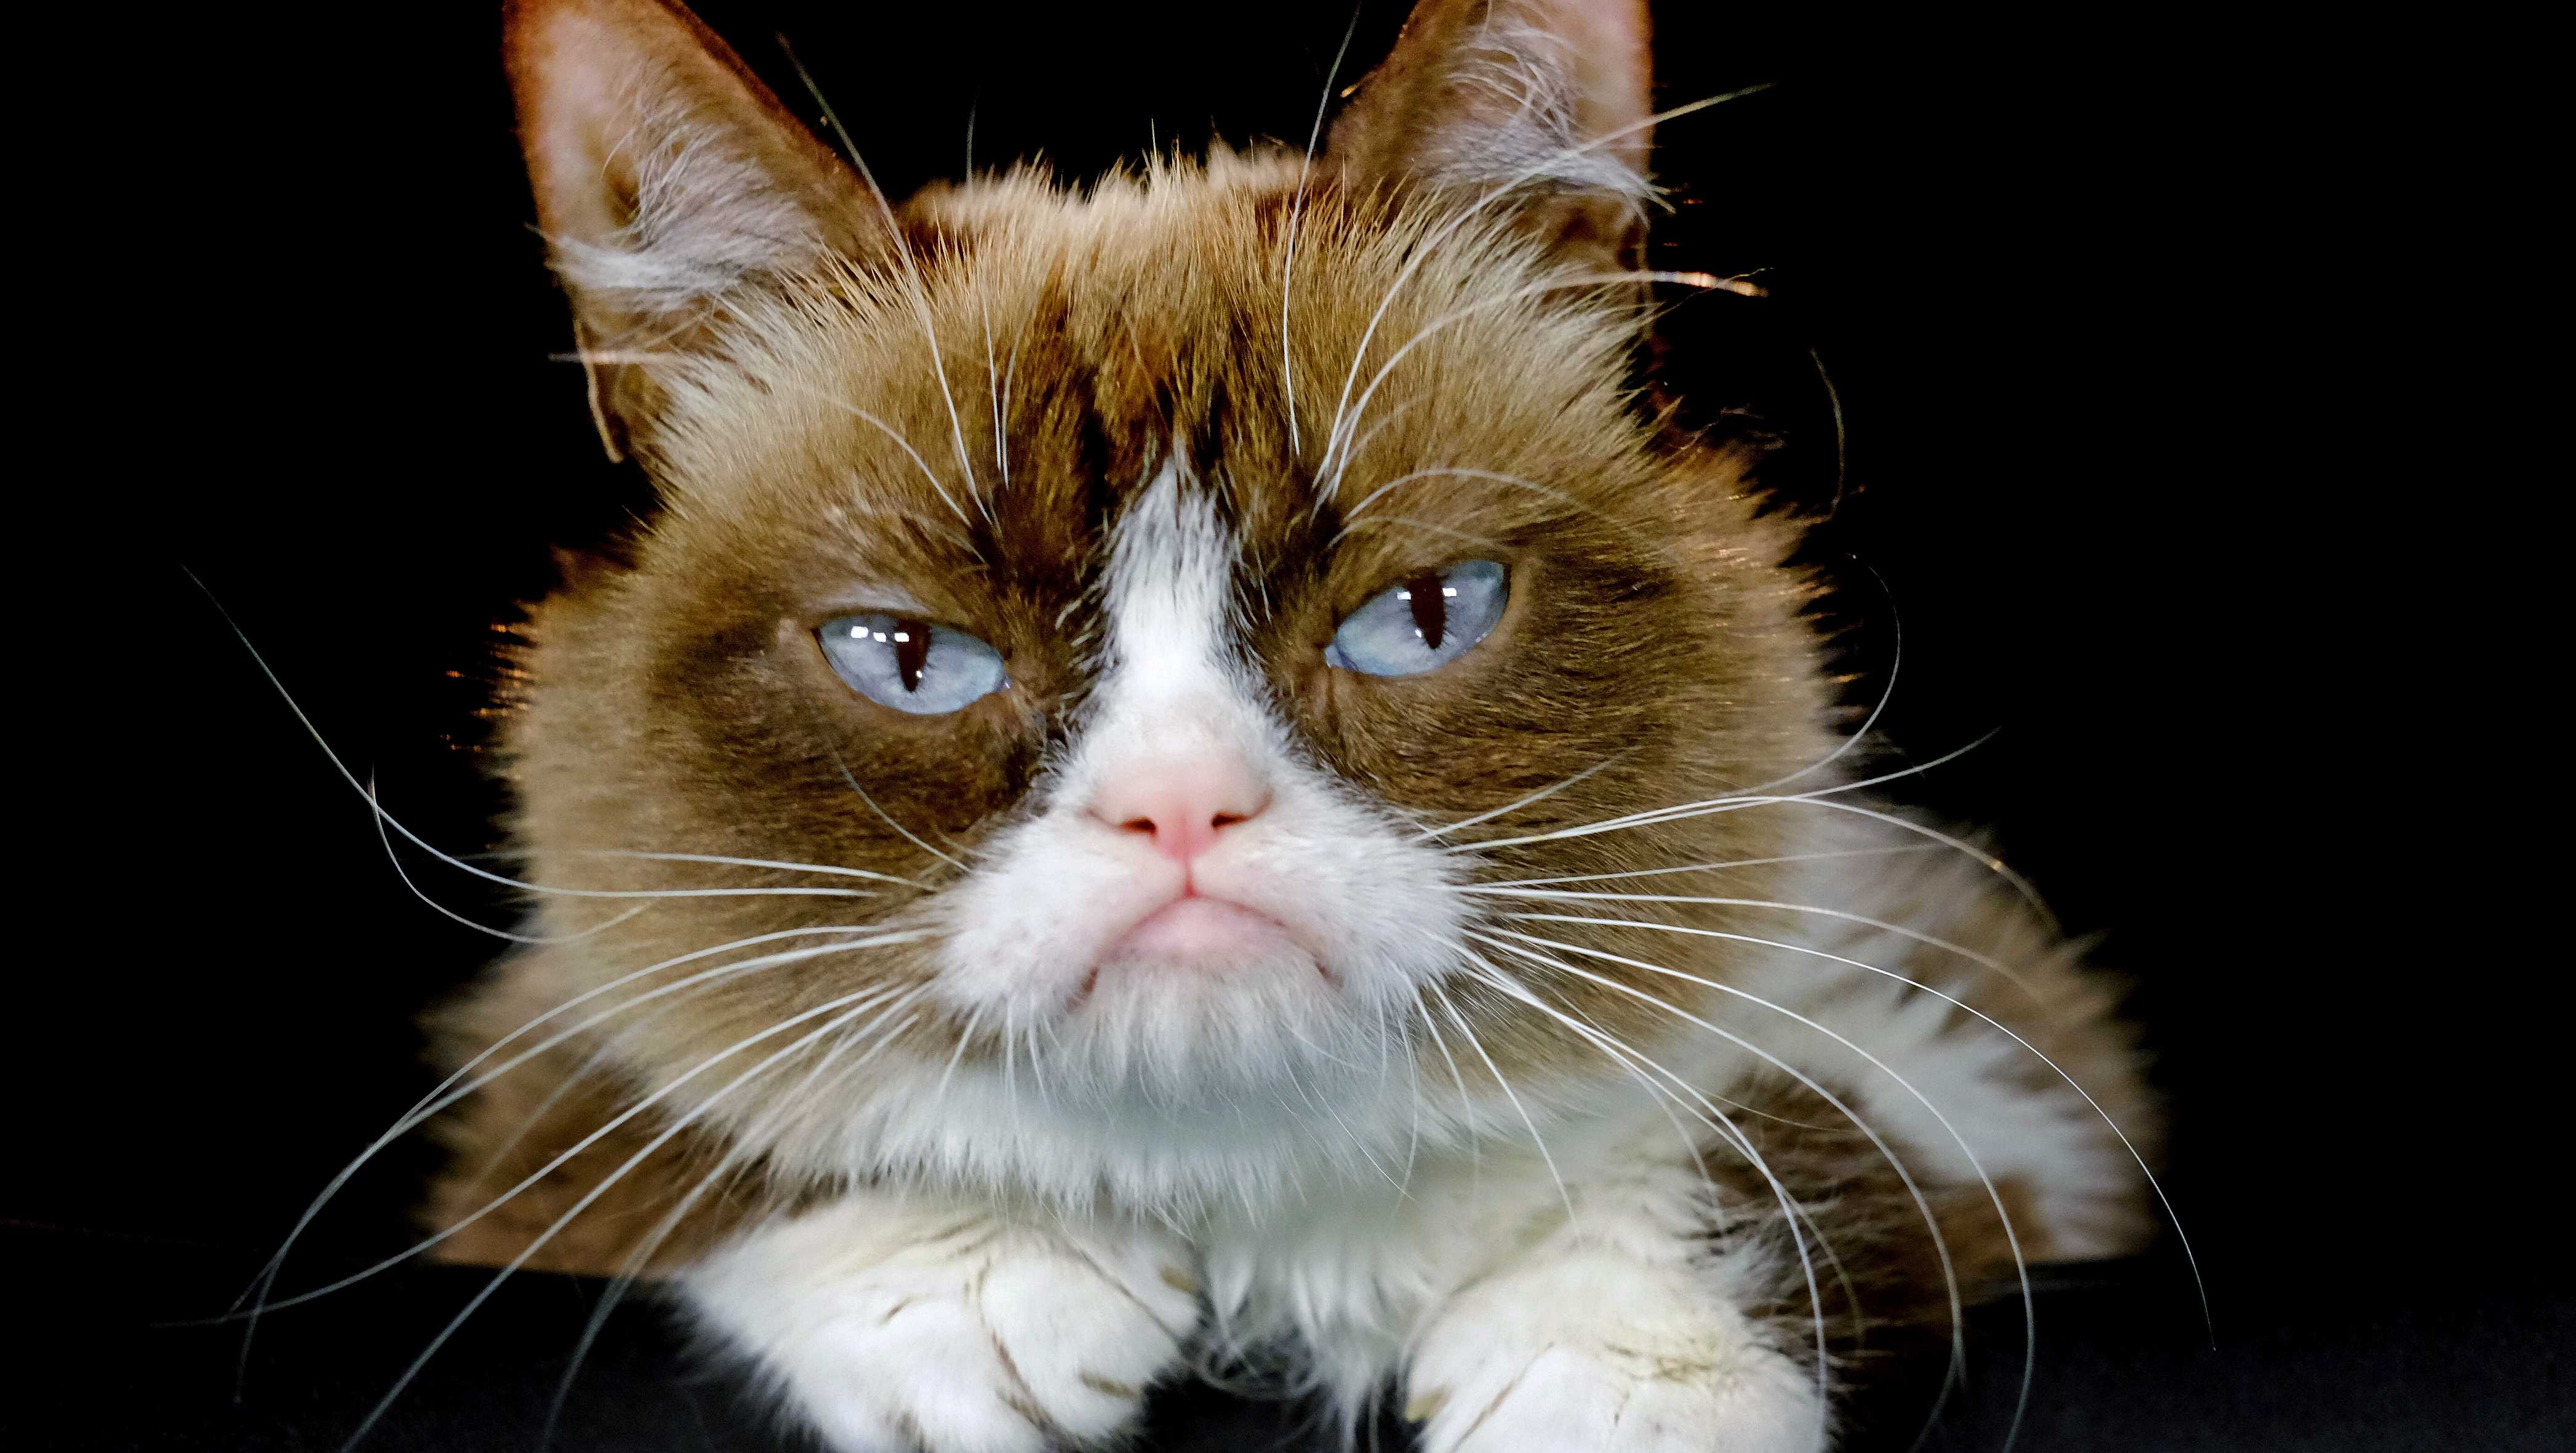 This Dec. 1, 2015 file photo shows Grumpy Cat posing for a photo in Los Angeles.